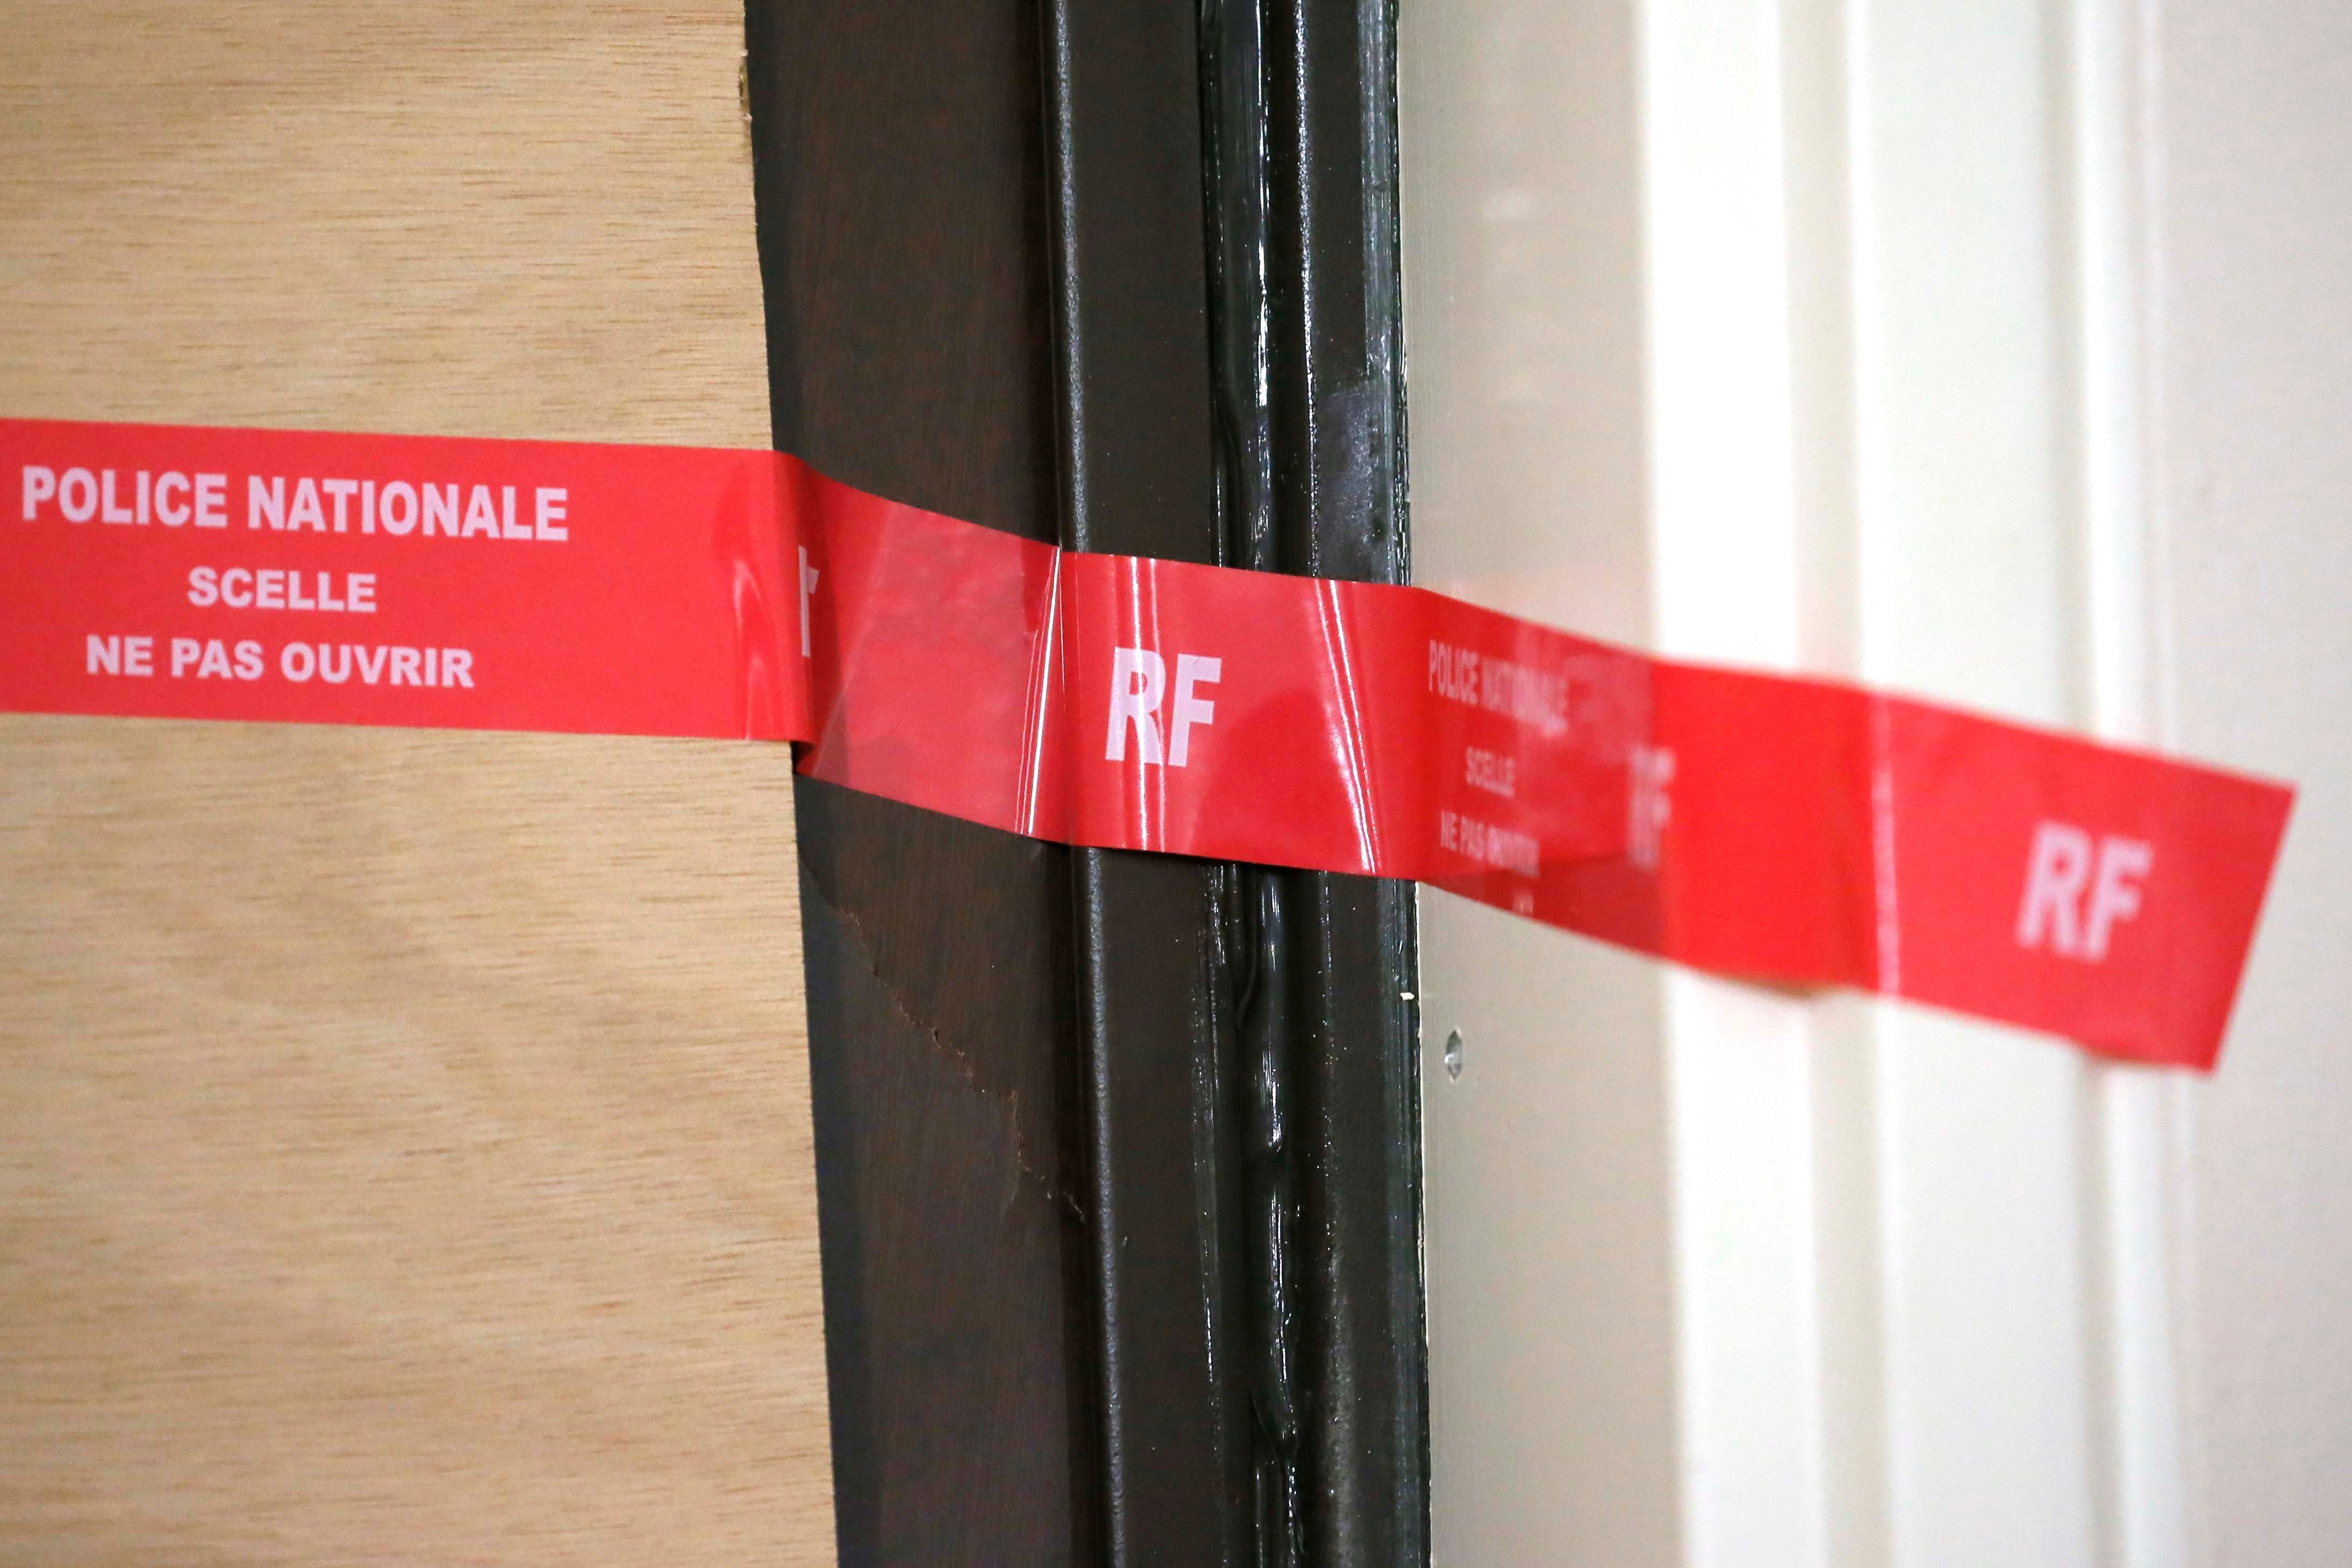 A view shows the front door which has been blocked and sealed by police at the apartment where Samy Amimour, one of the attackers identified by the police, grew up in the Parisian suburb of Drancy, France, November 17, 2015.